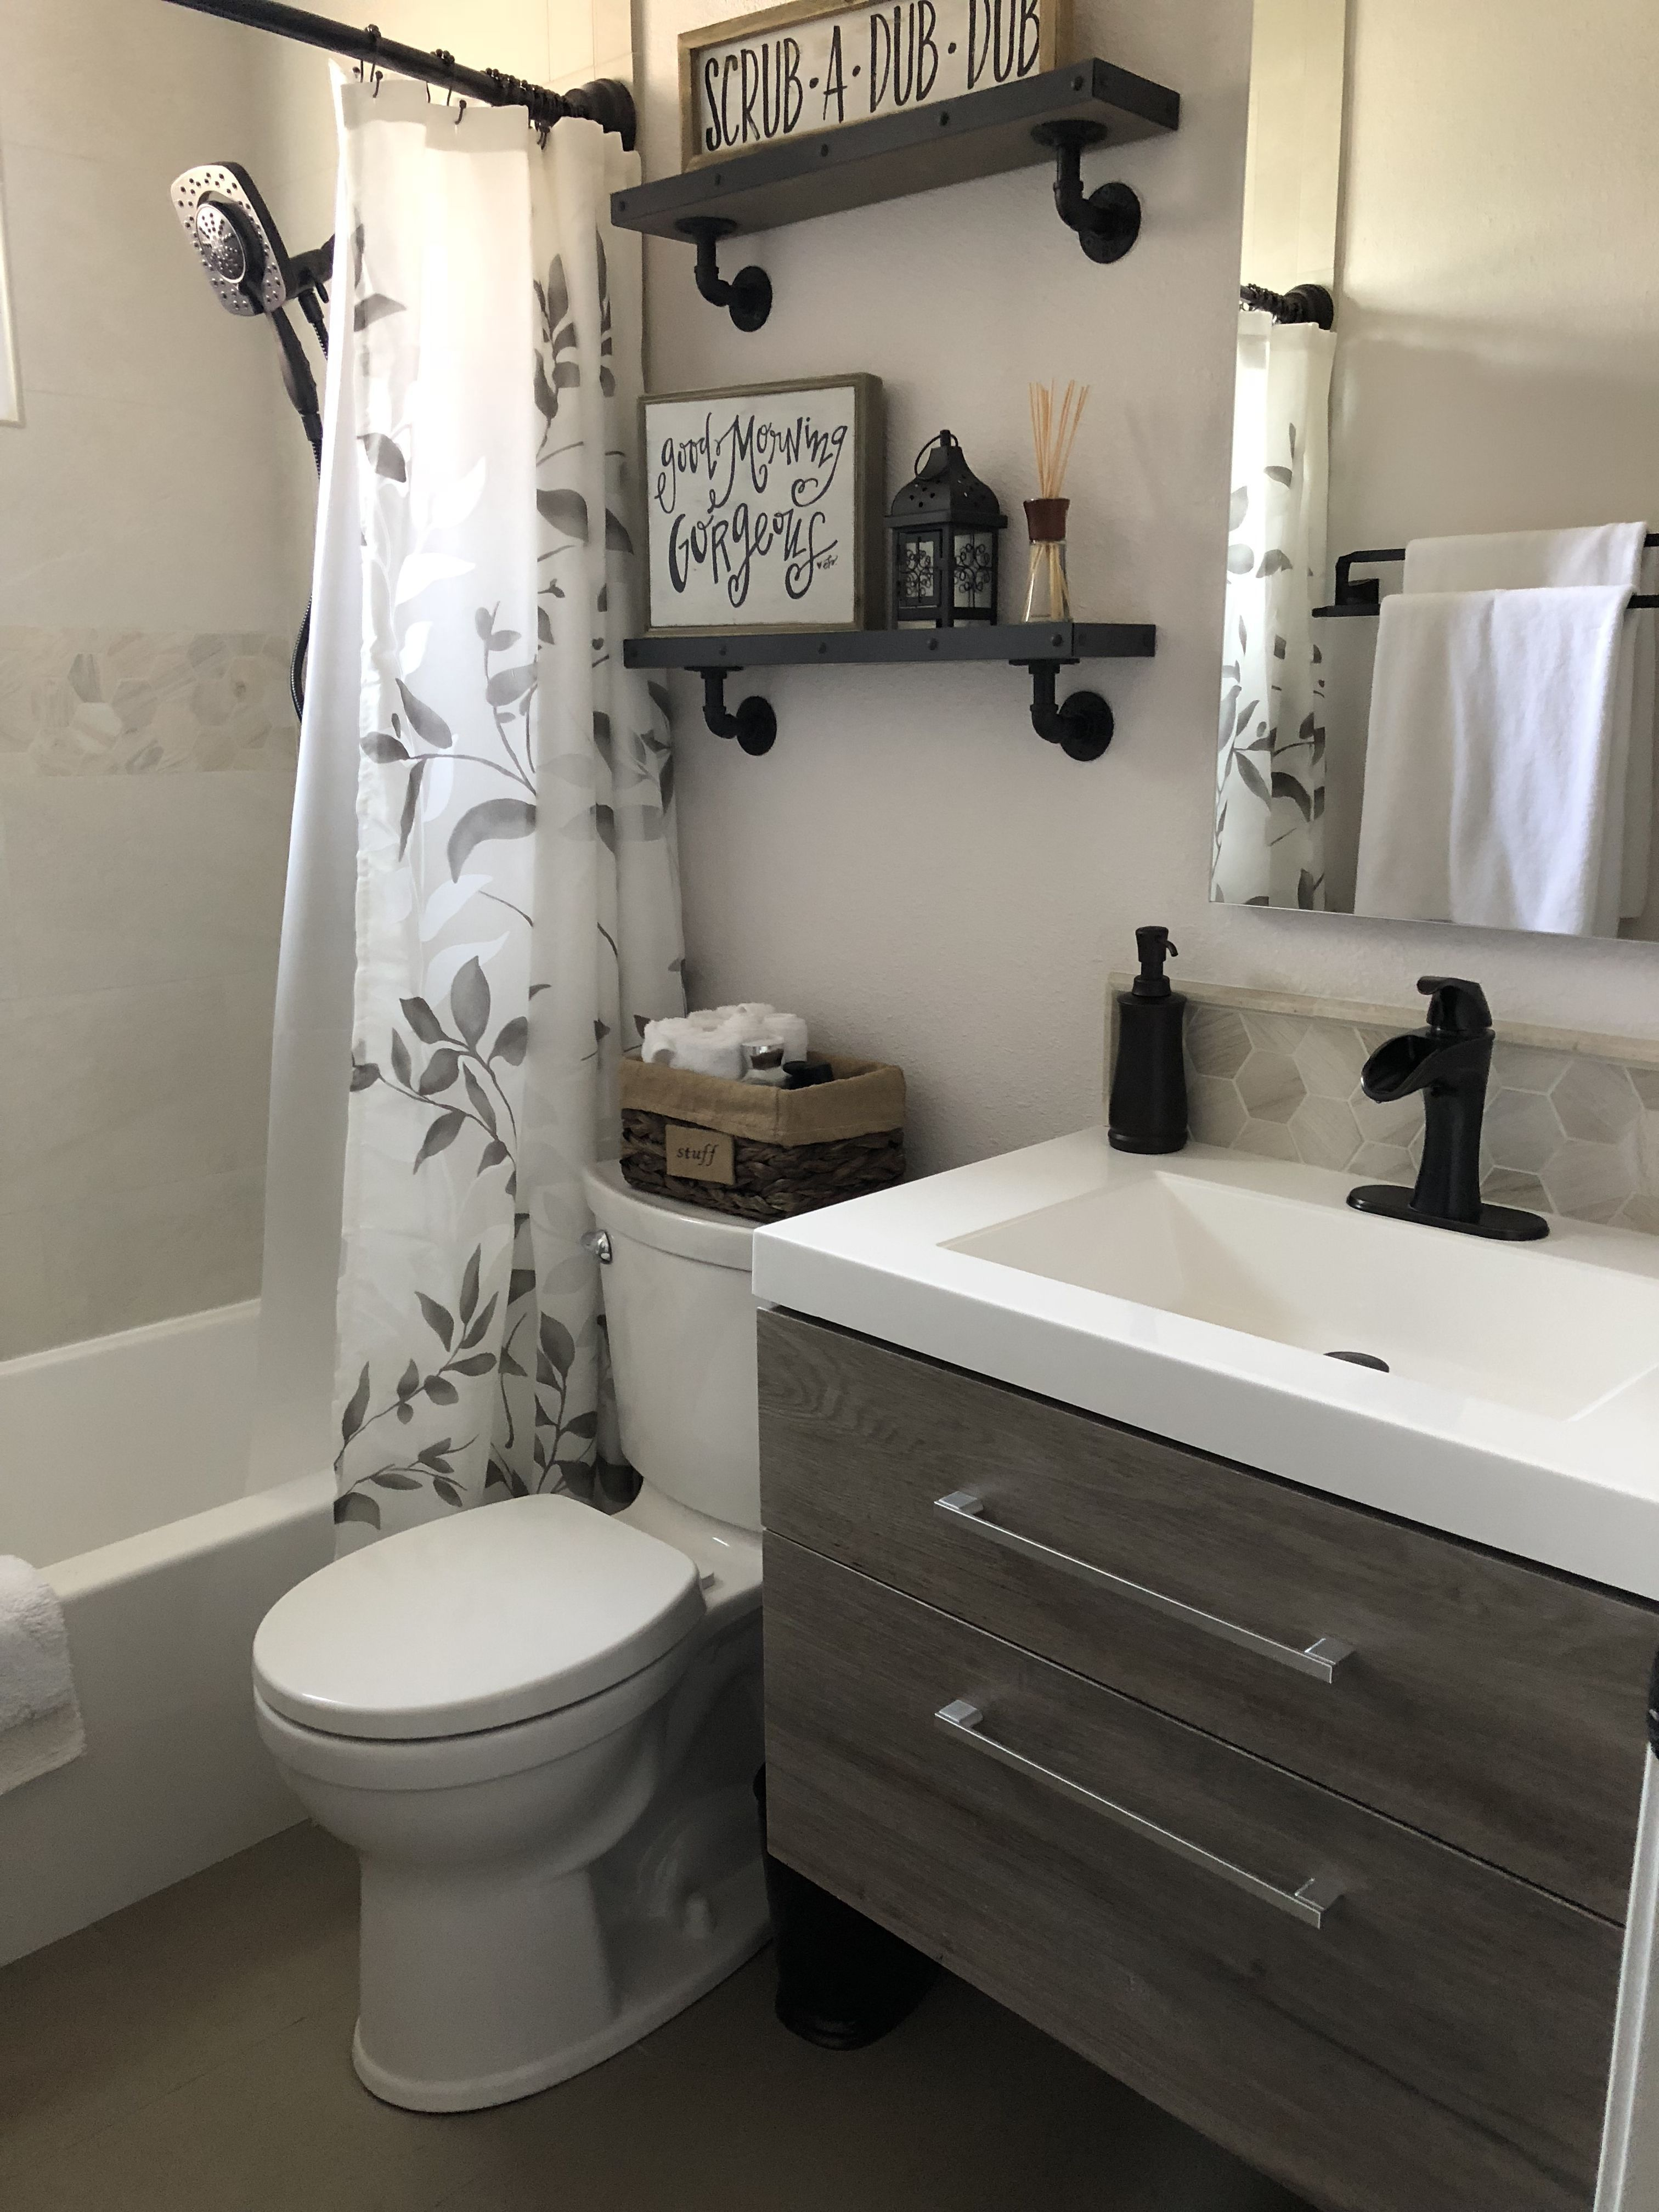 18+ Best Small Bathroom Design Ideas That Will Make It Stand Out